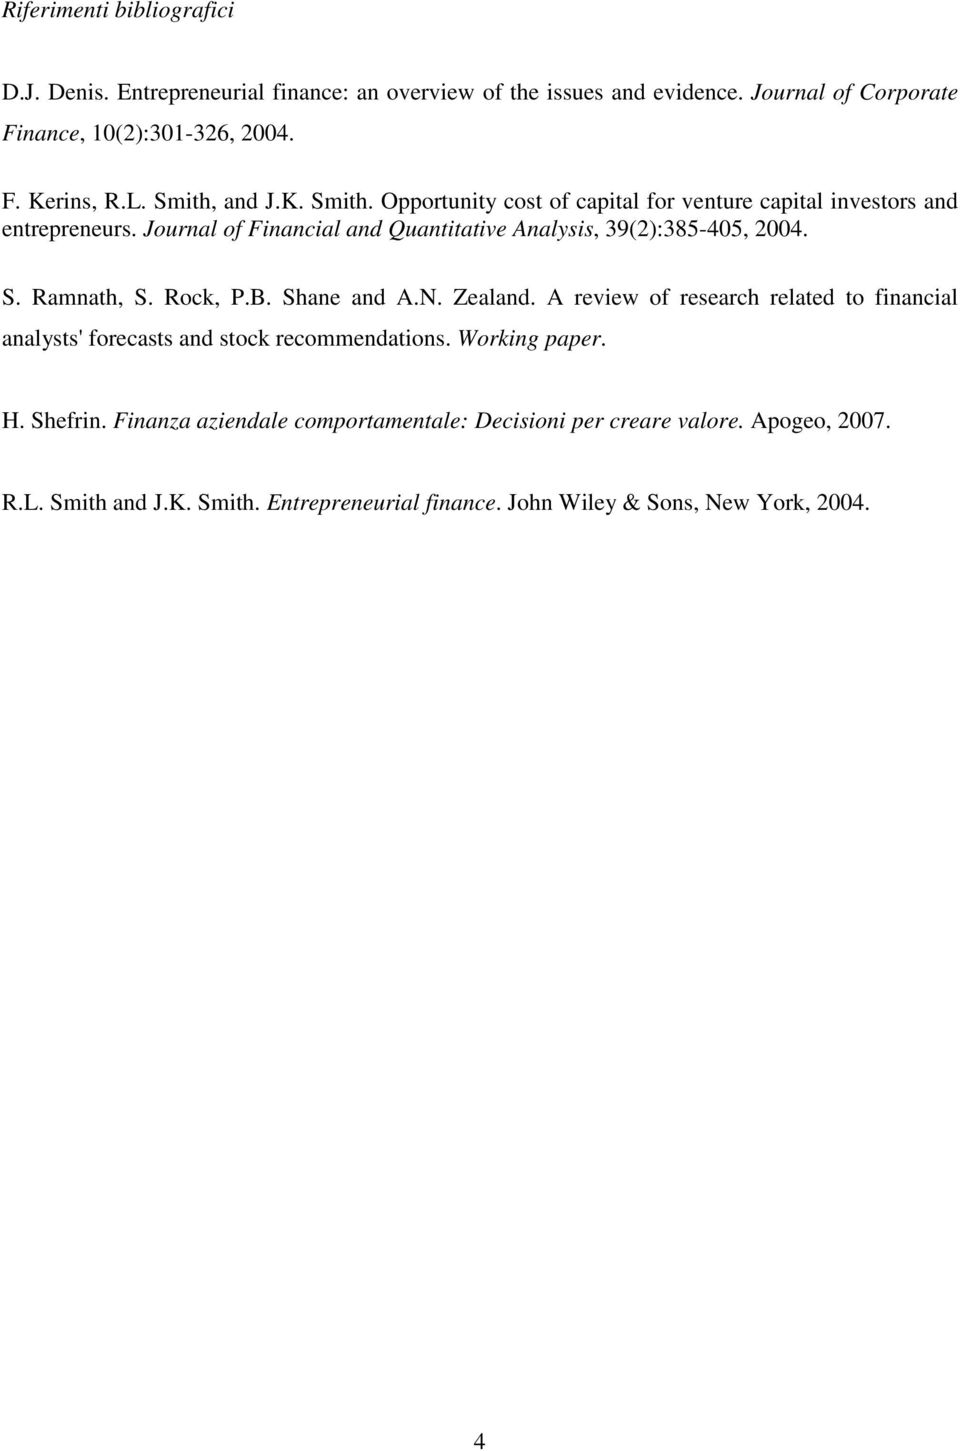 Journal of Financial and Quantitative Analysis, 39(2):385-405, 2004. S. Ramnath, S. Rock, P.B. Shane and A.N. Zealand.